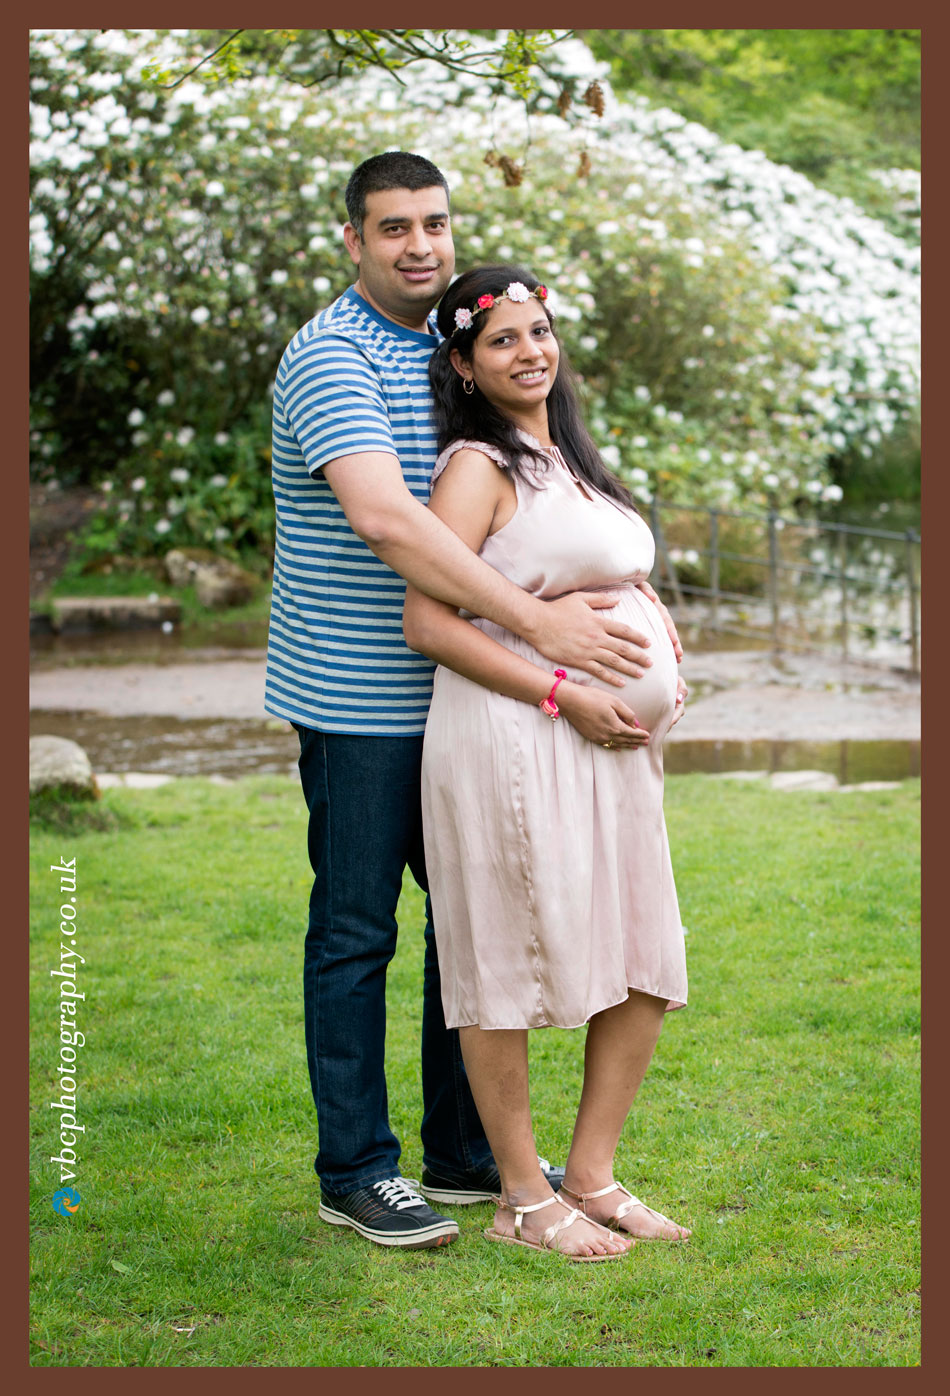 Baby Bump Photoshoot